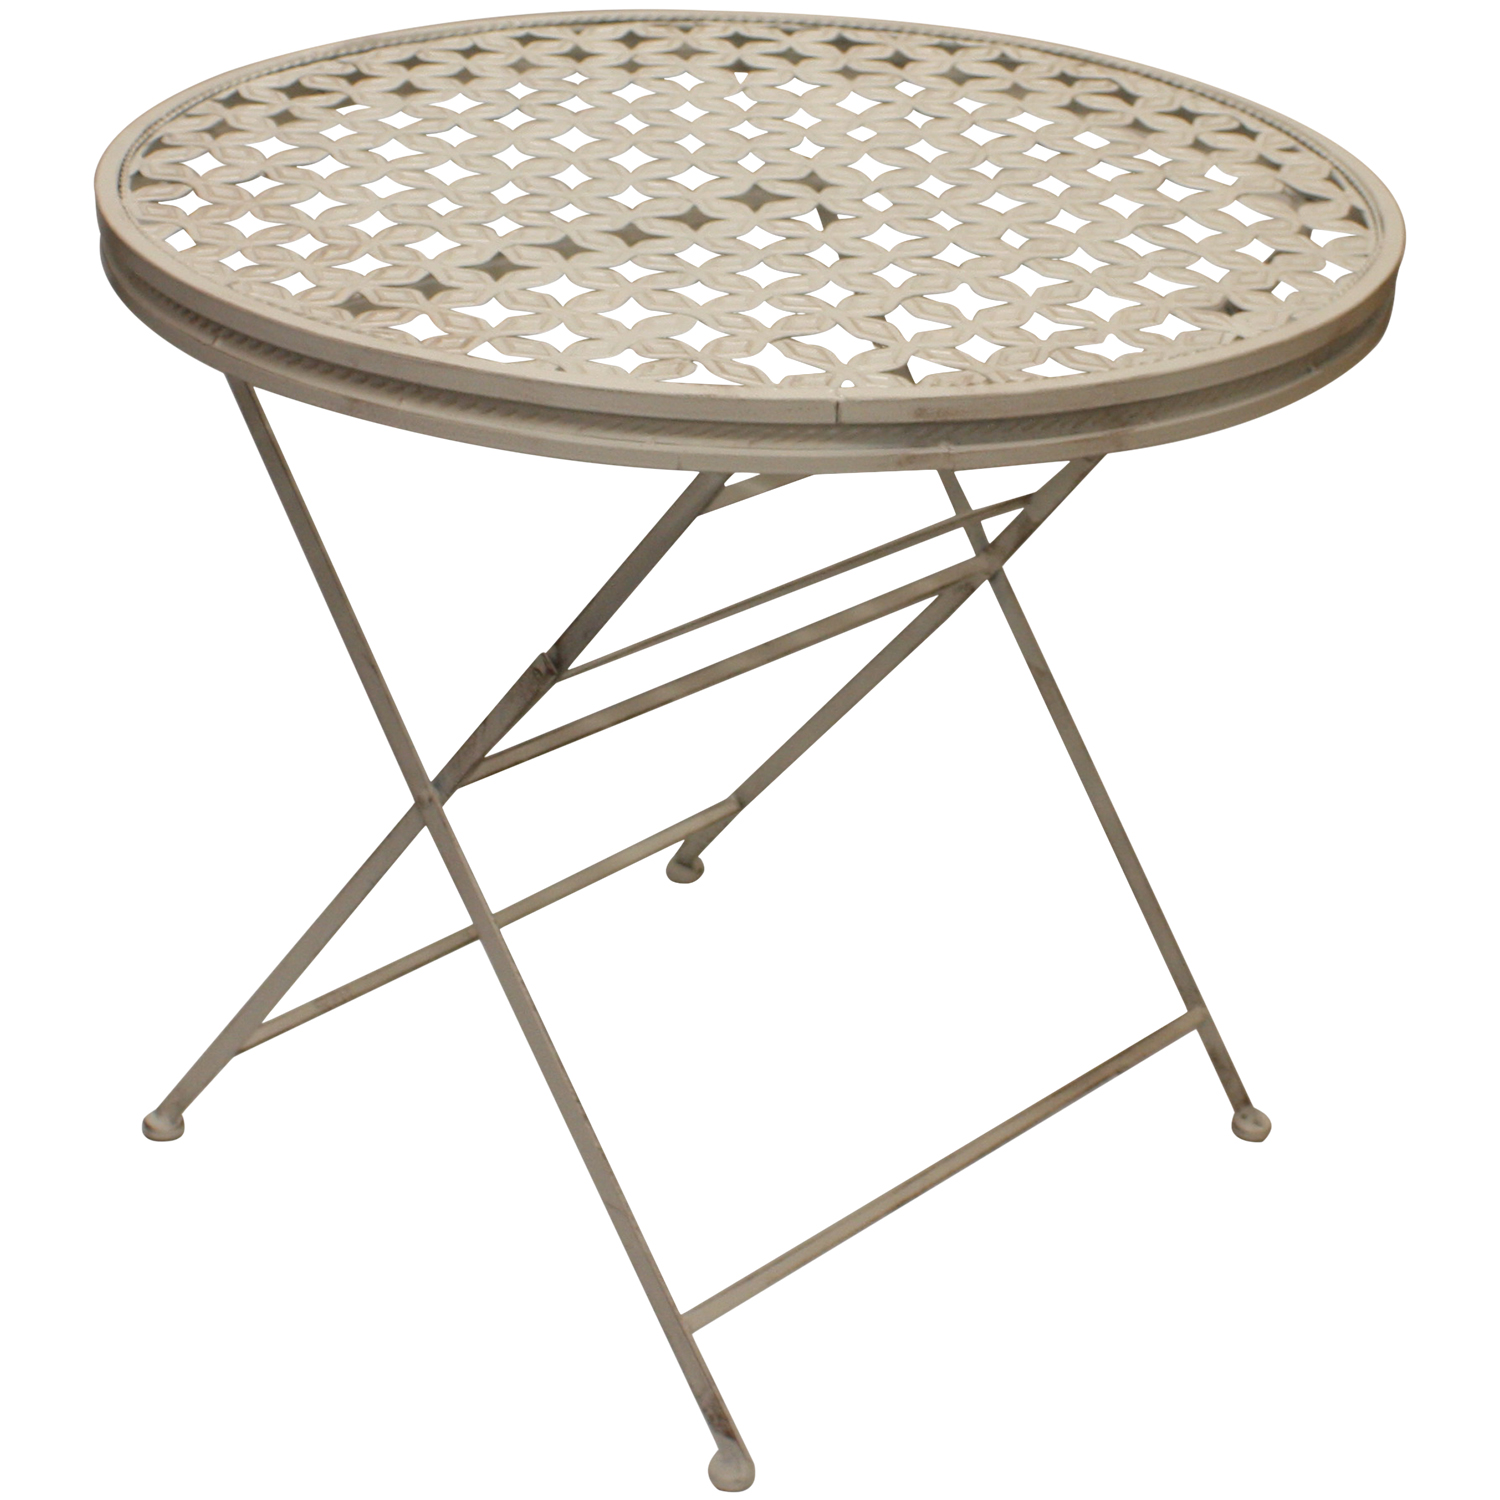 Woodside round folding metal garden patio dining table for Garden patio table